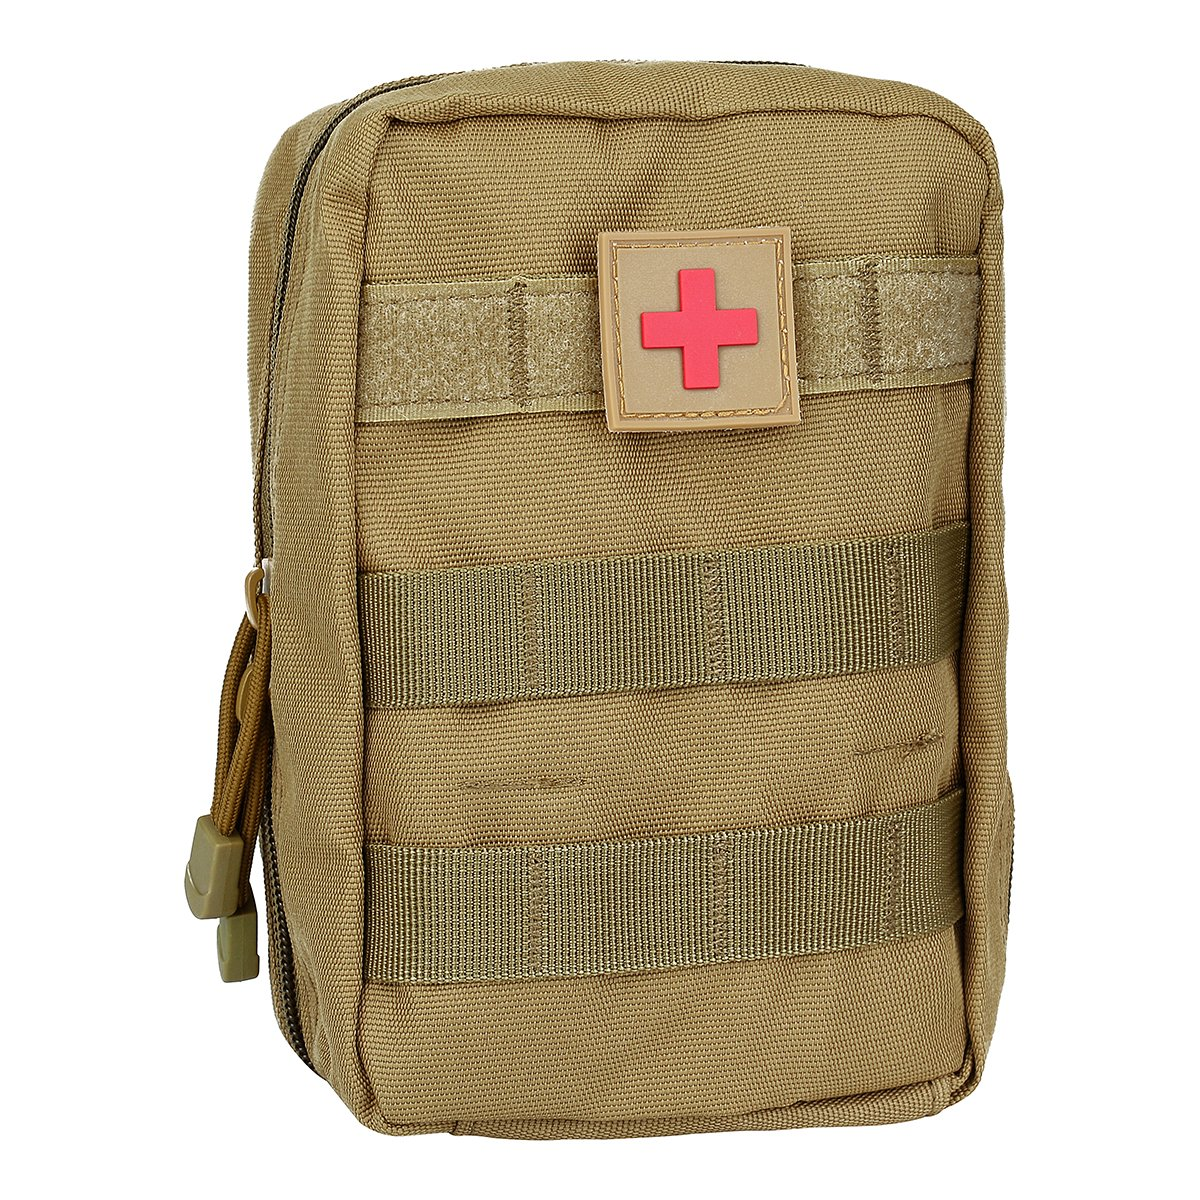 Molle pouches - Tactical MOLLE EMT Medical First Aid IFAK Blowout Utility Pouch (Bag Only), 1pcs Molle pouch, Tan and Black Color for Optional Weiye